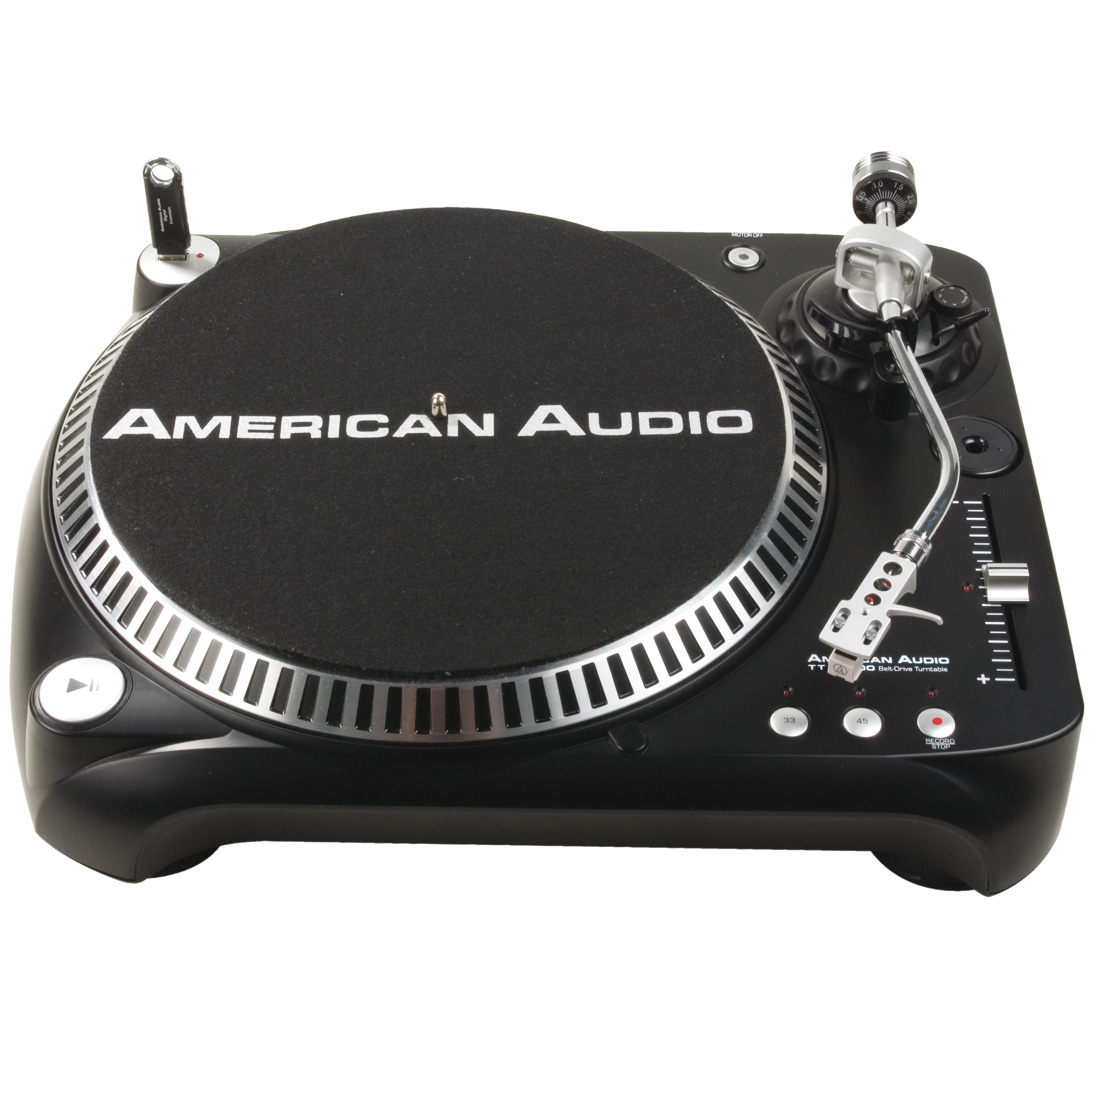 TT Record - USB recording turntable